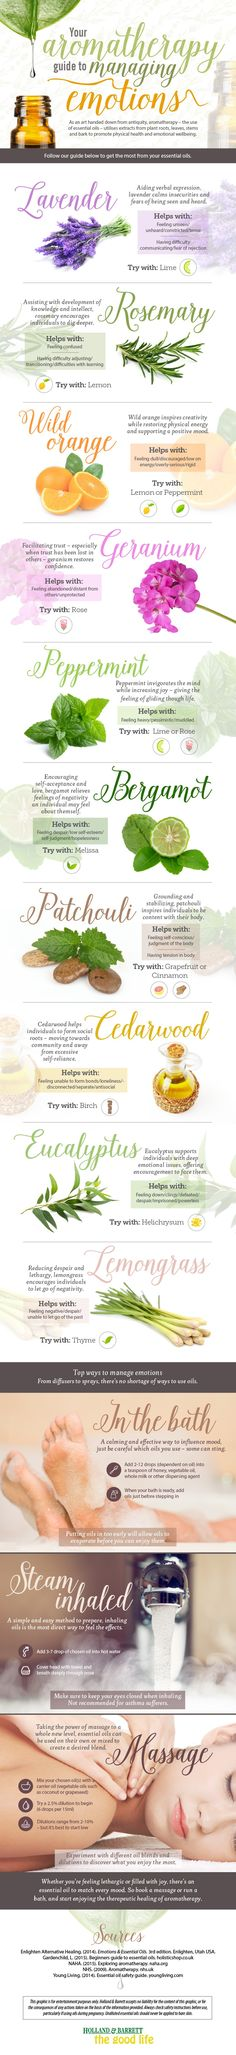 Your visual guide to using Aromatherapy and Essential Oils to Manage Mood and Energy! ❤